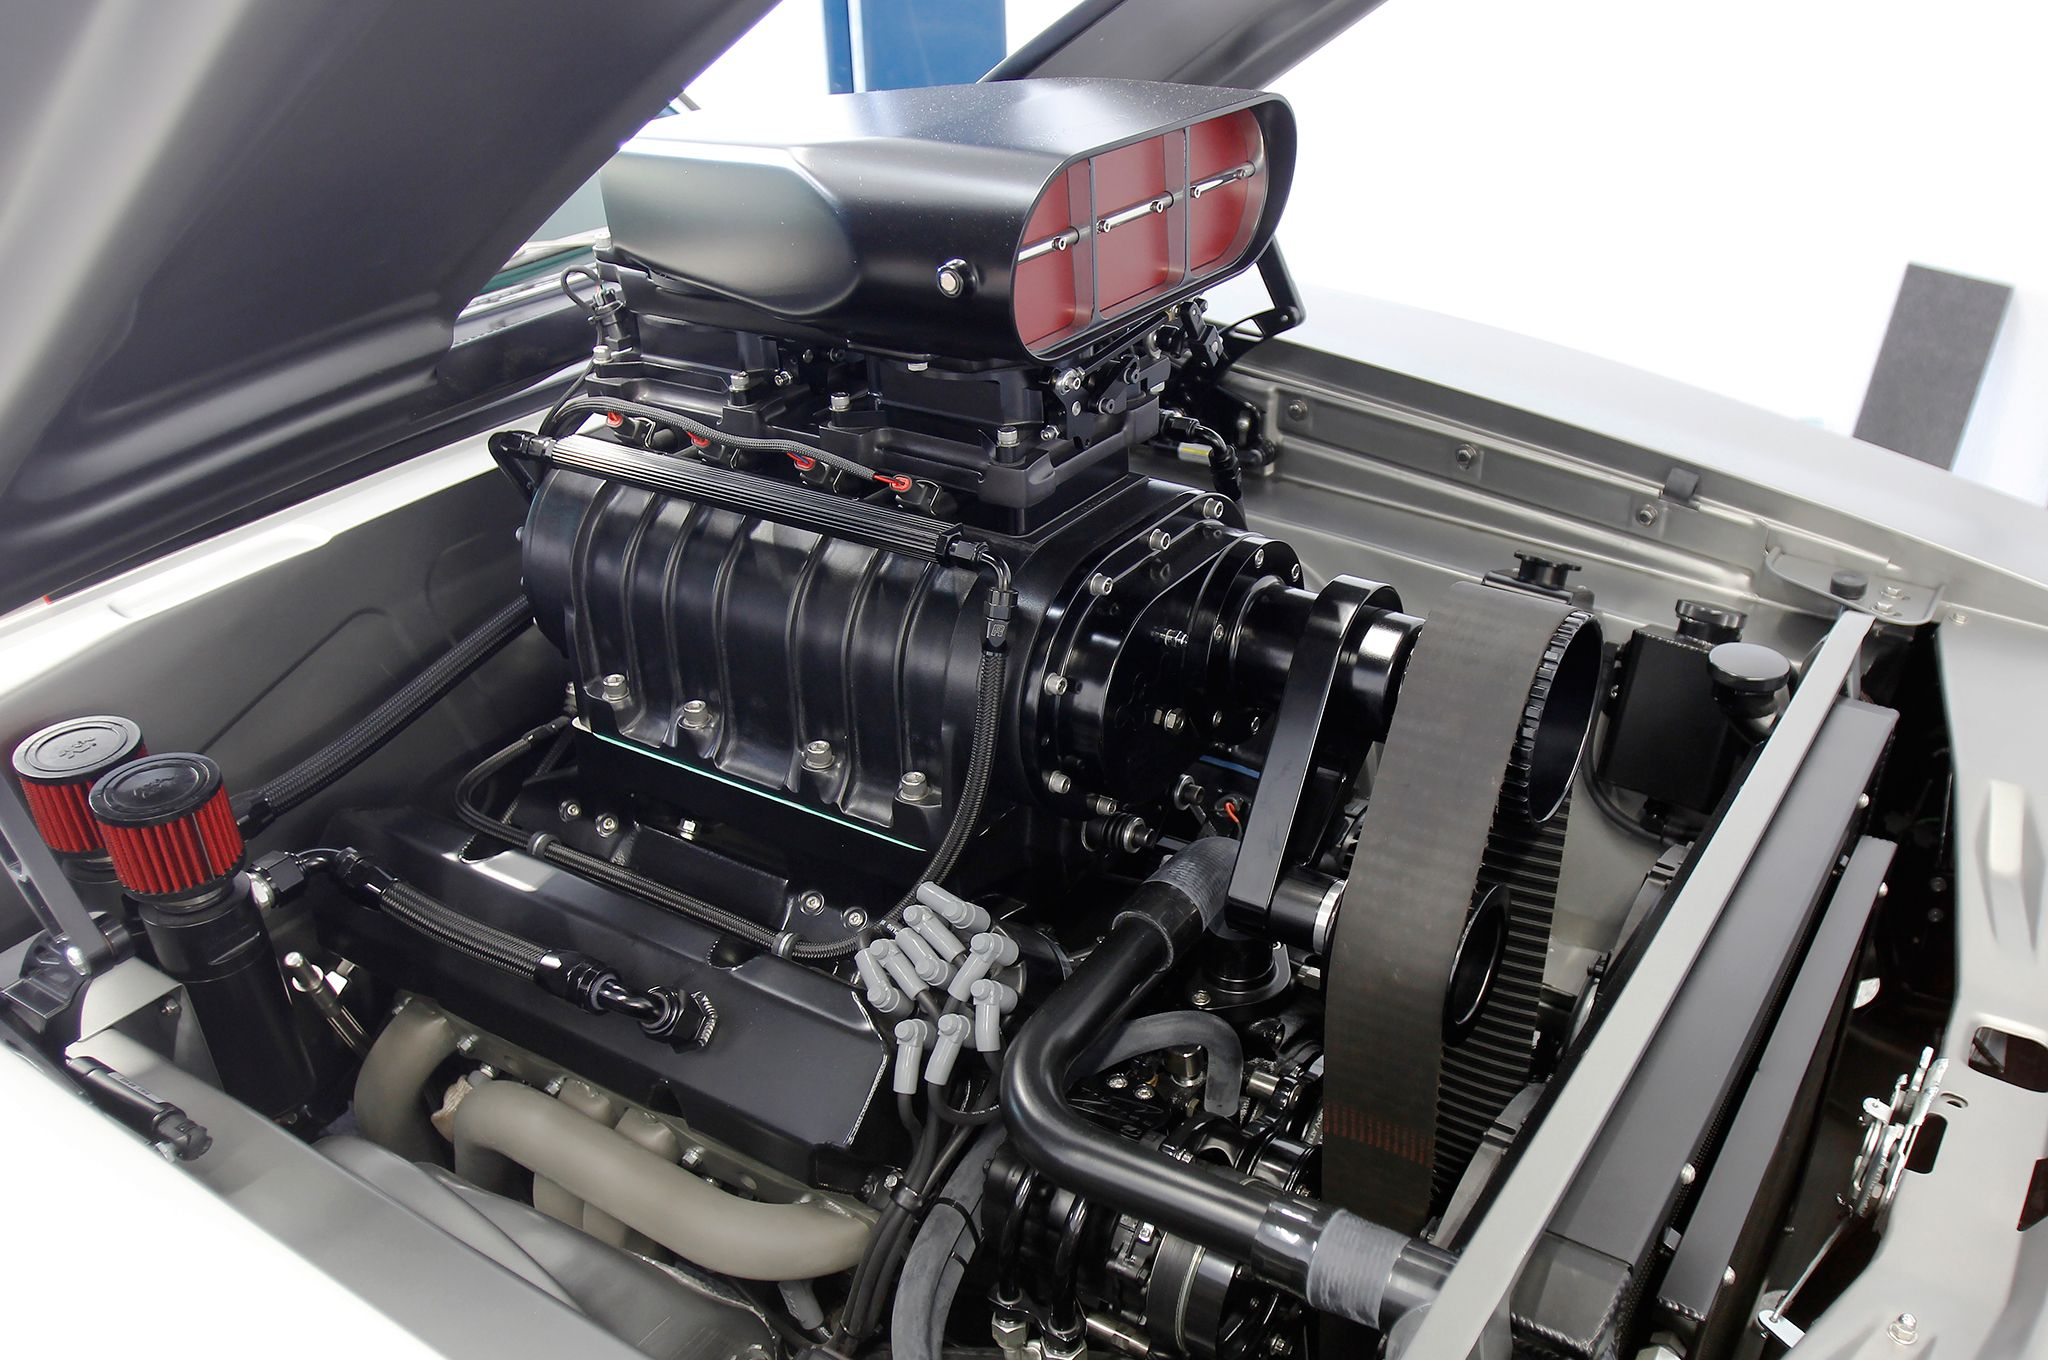 1970 dodge charger engine view